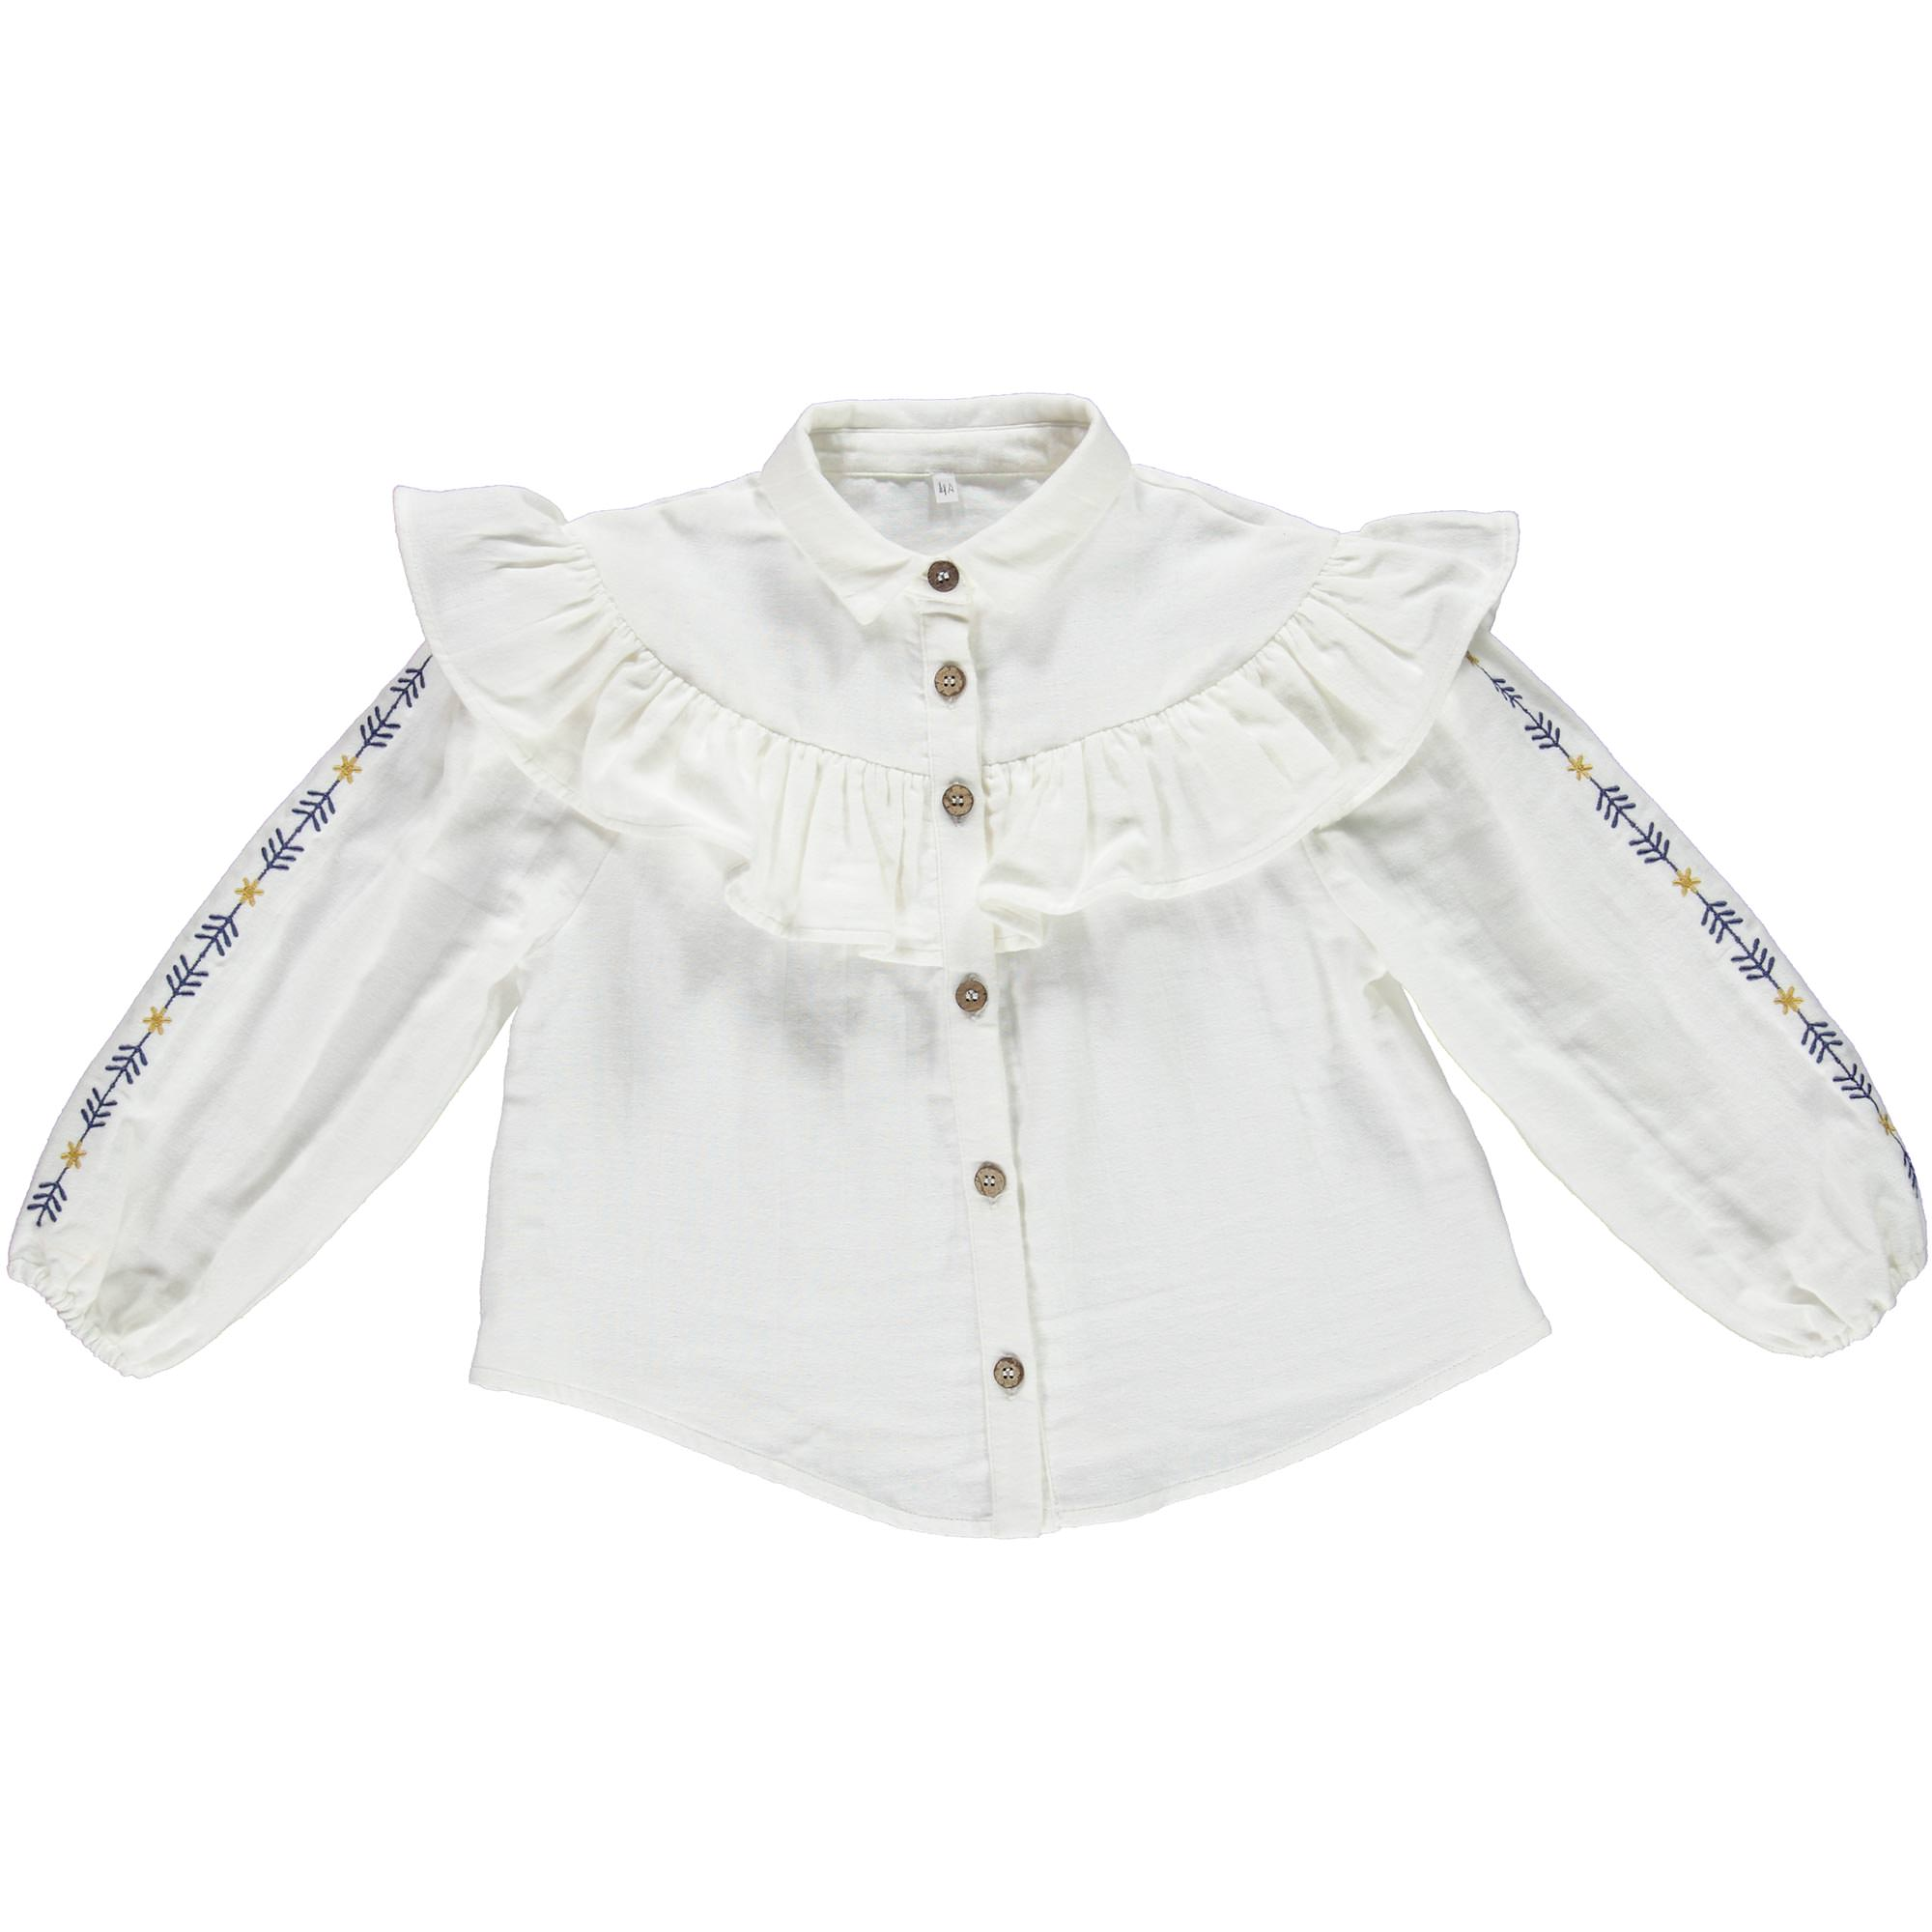 Kaleidoscope Kyoto Ecru Blouse Kids Wear